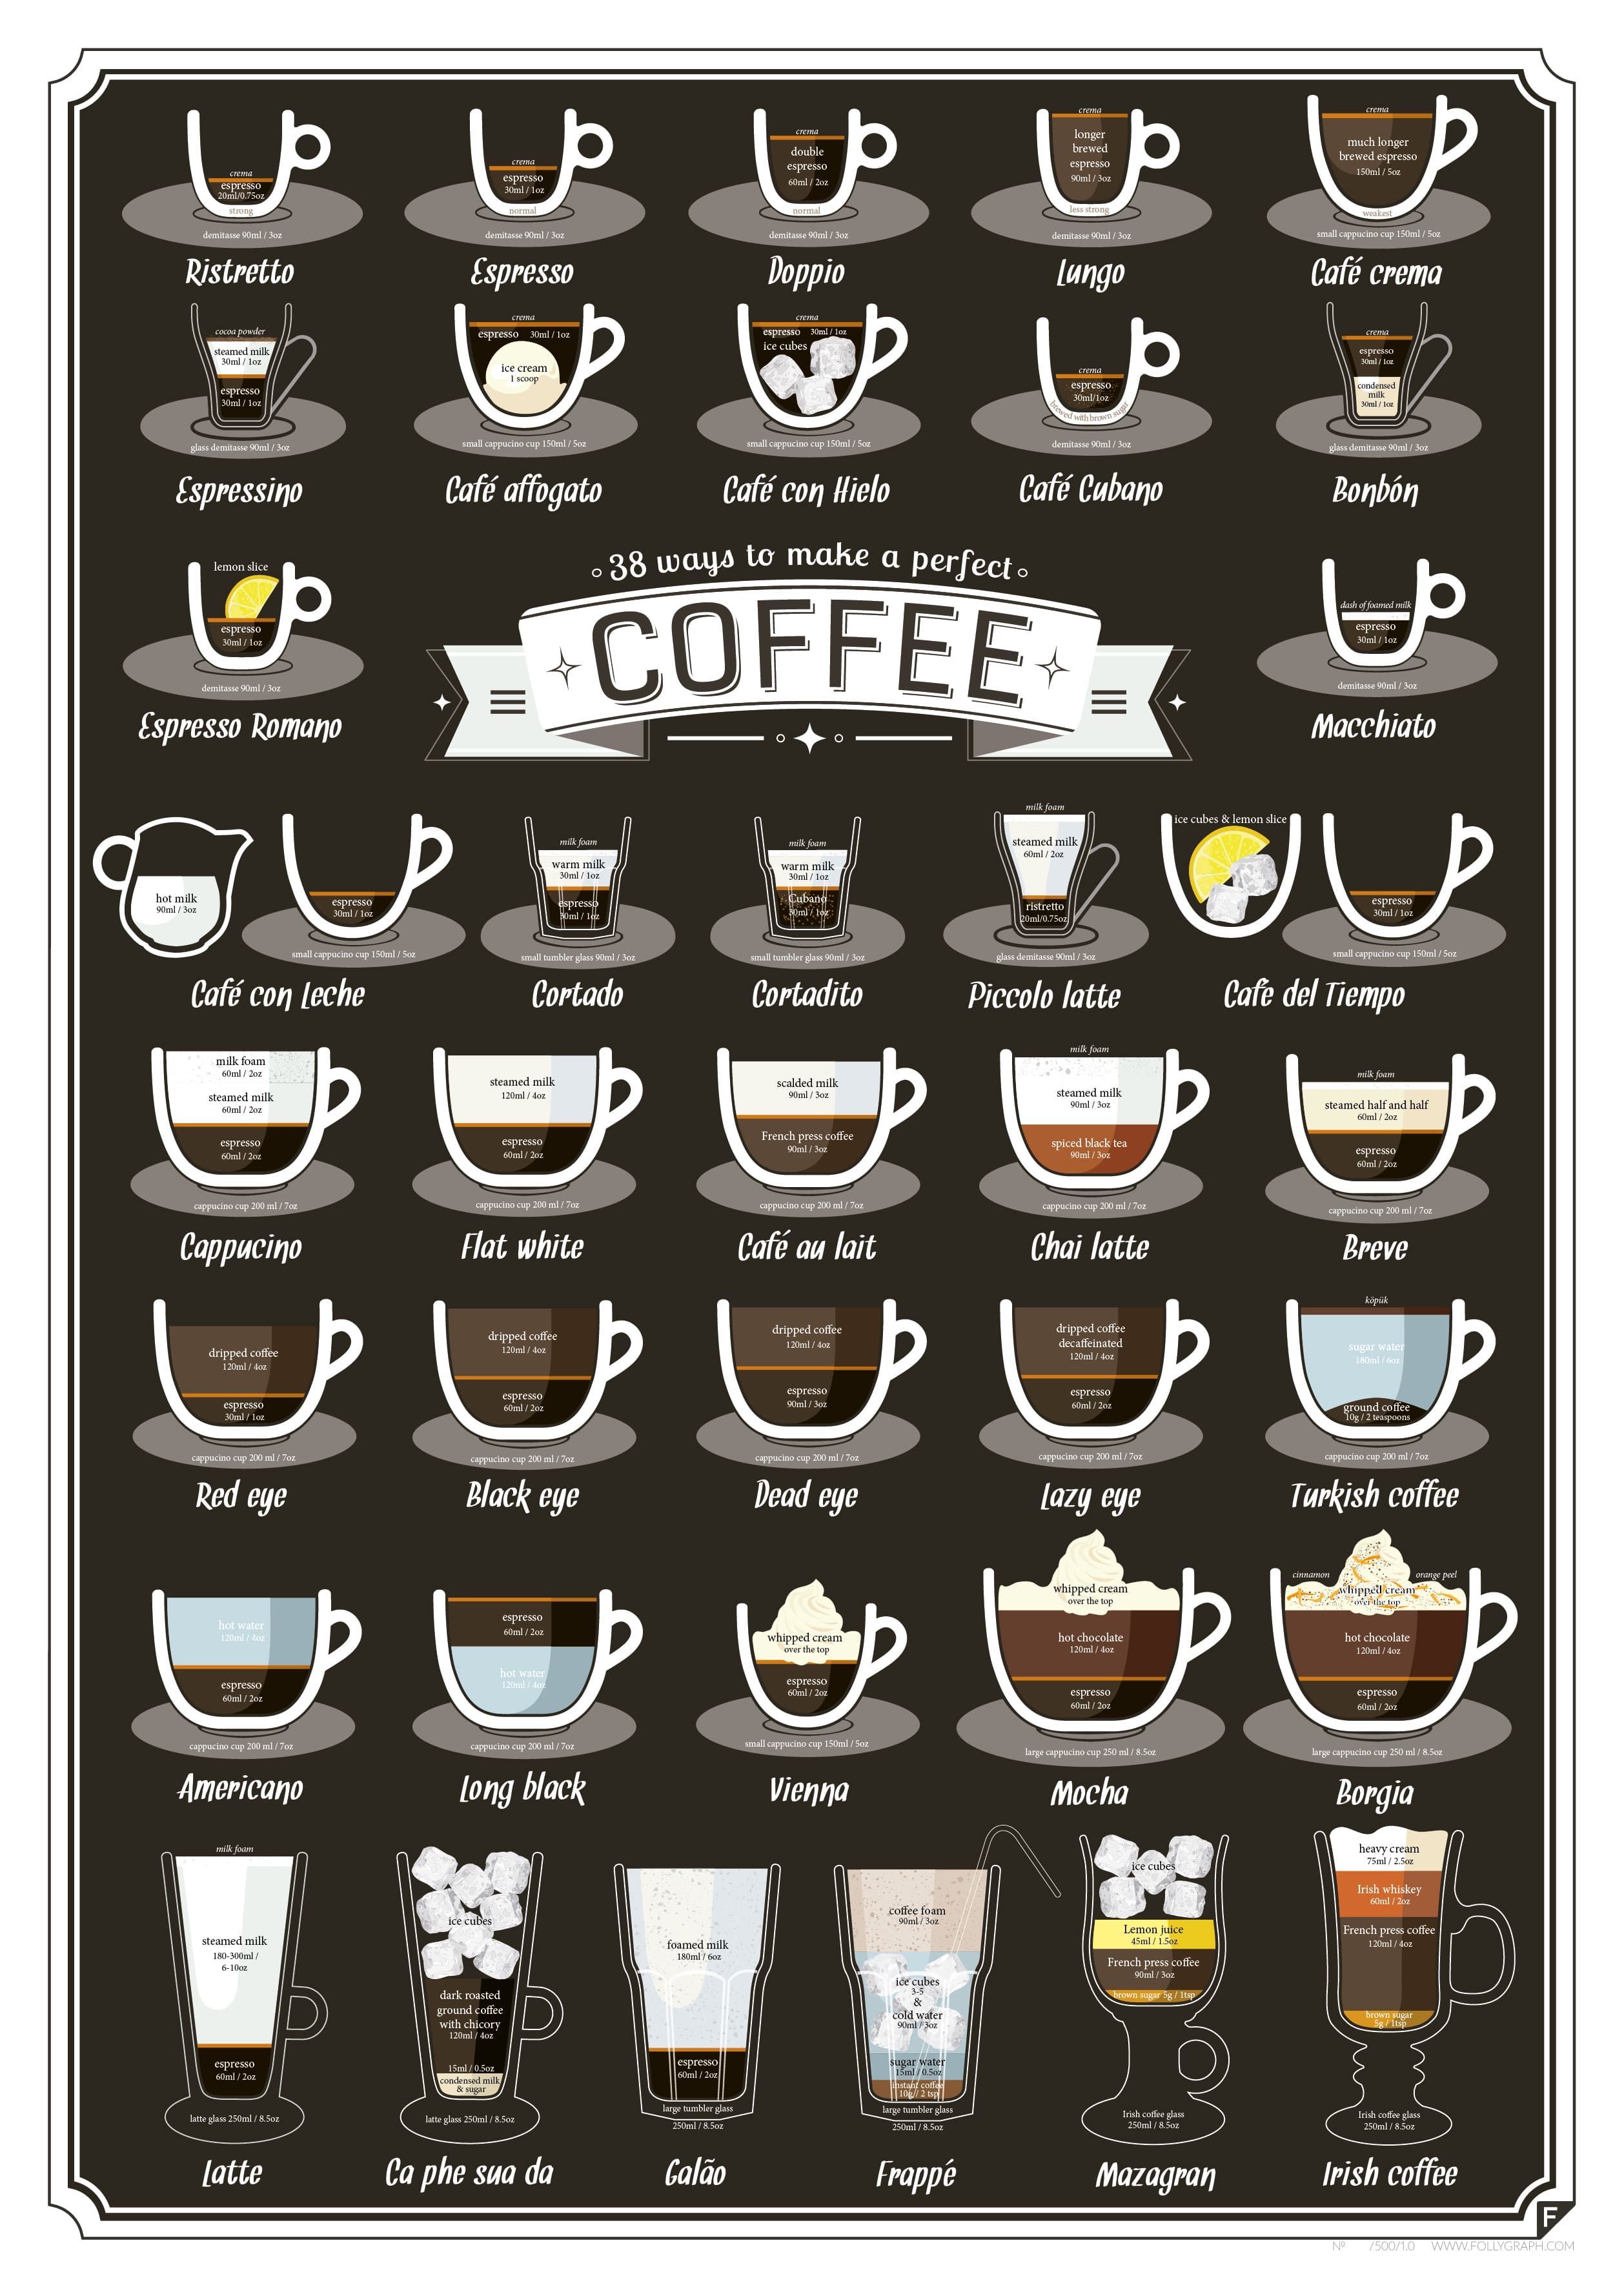 38-ways-to-make-a-perfect-coffee_53f5ef2b62be0.jpg